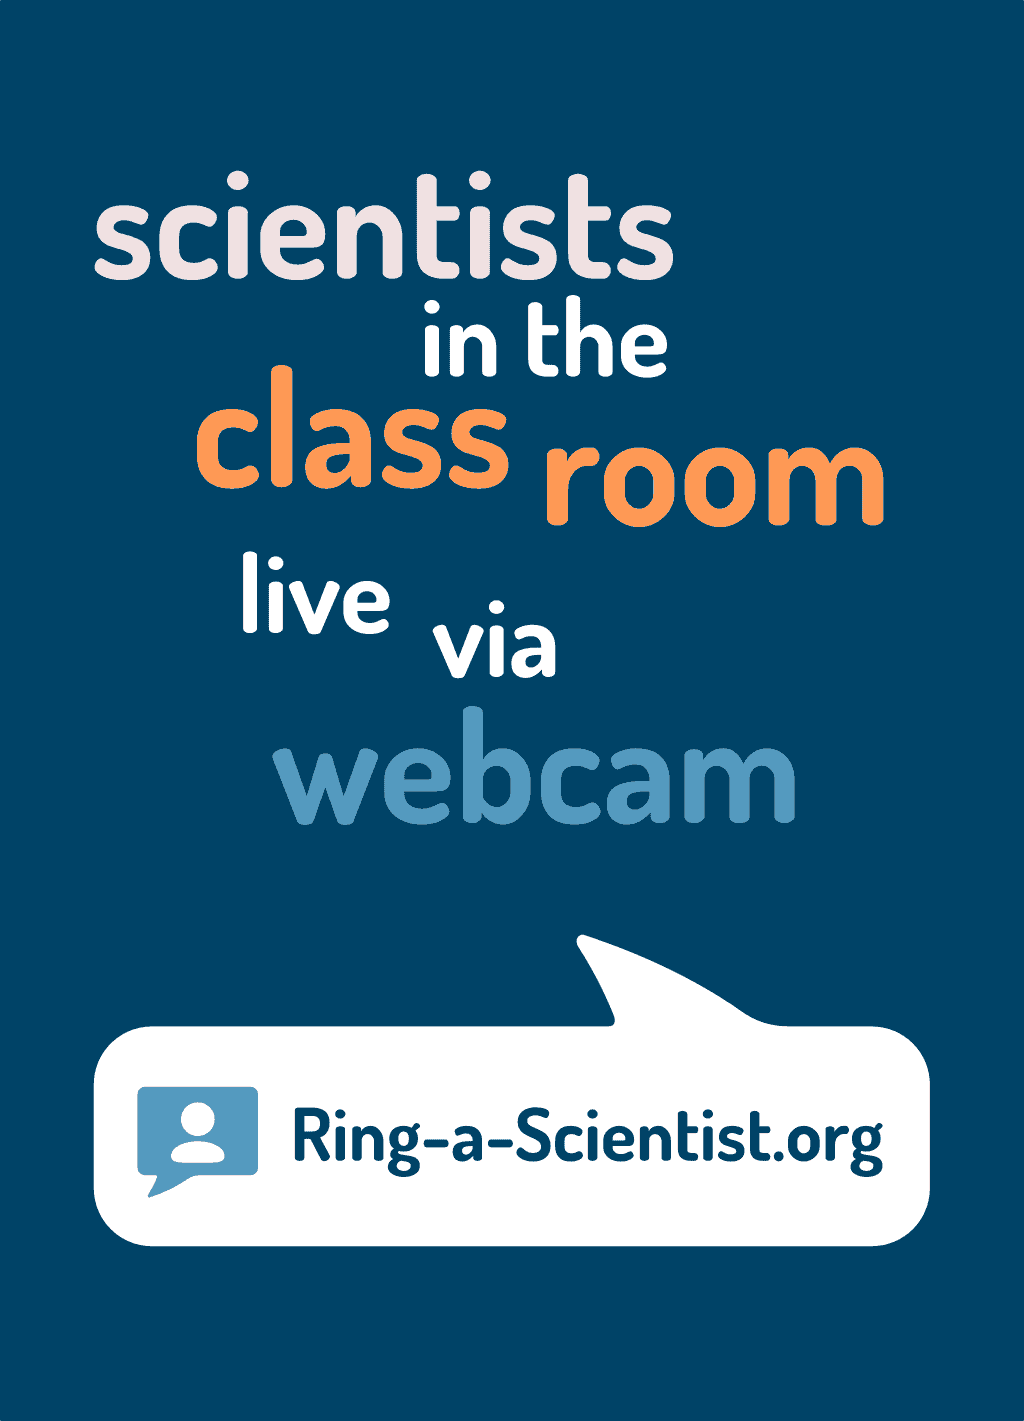 About Ring-a-scientist